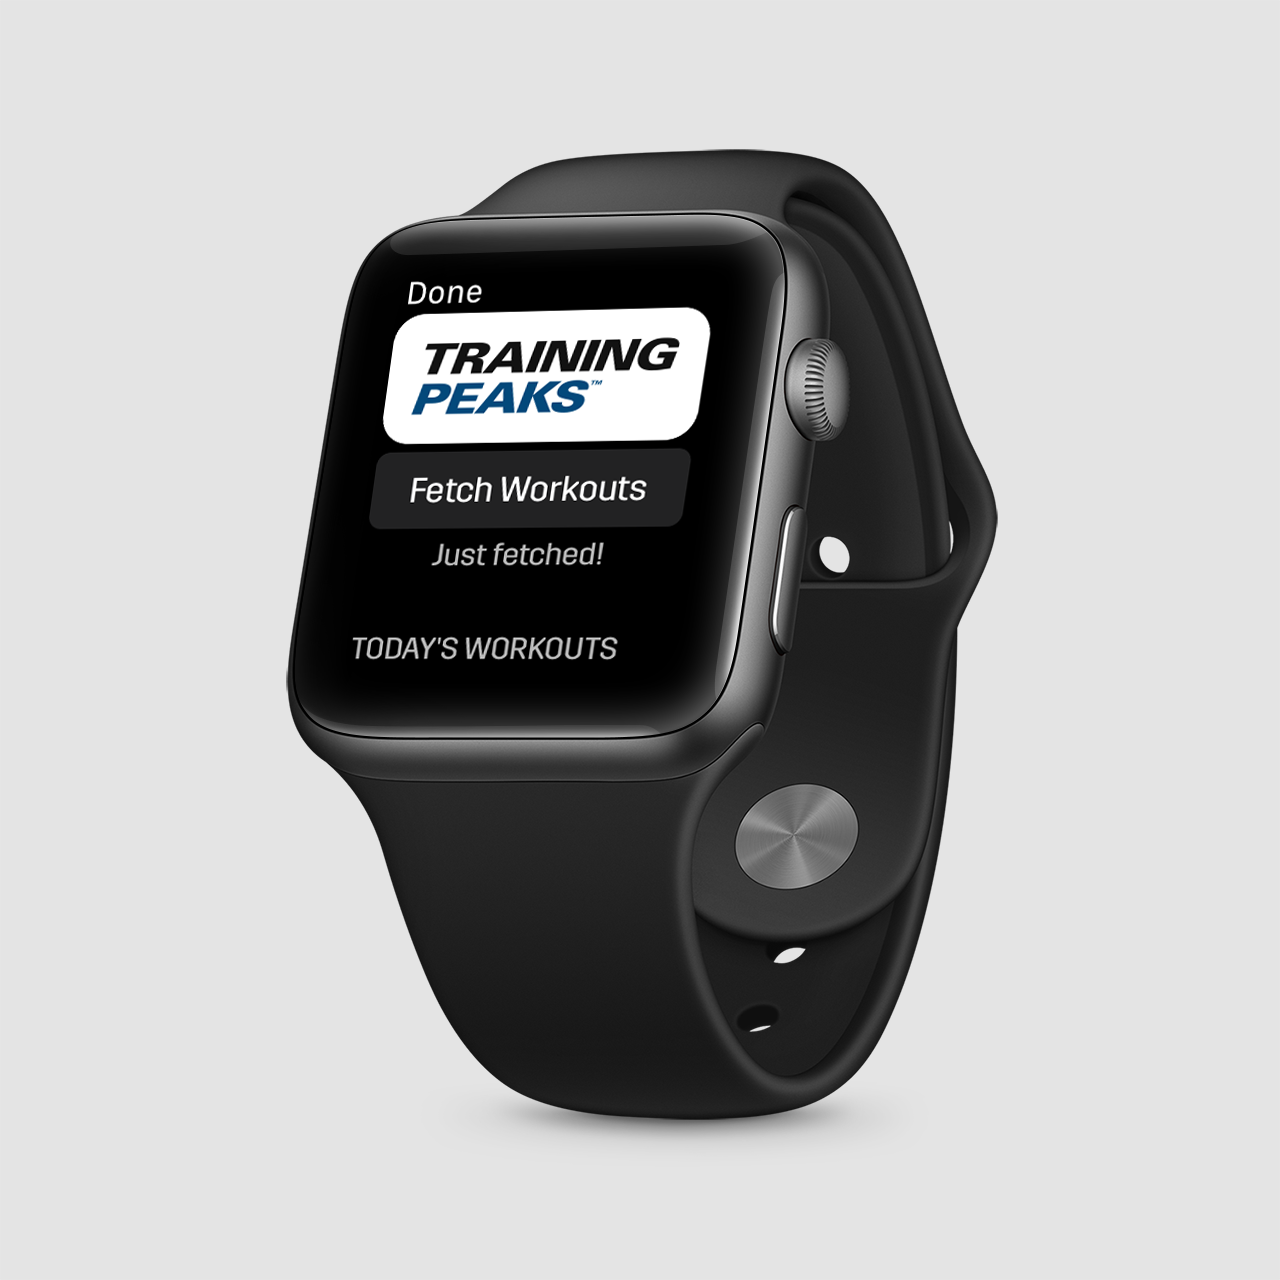 Stryd's Apple Watch App Enables Structured Run Power